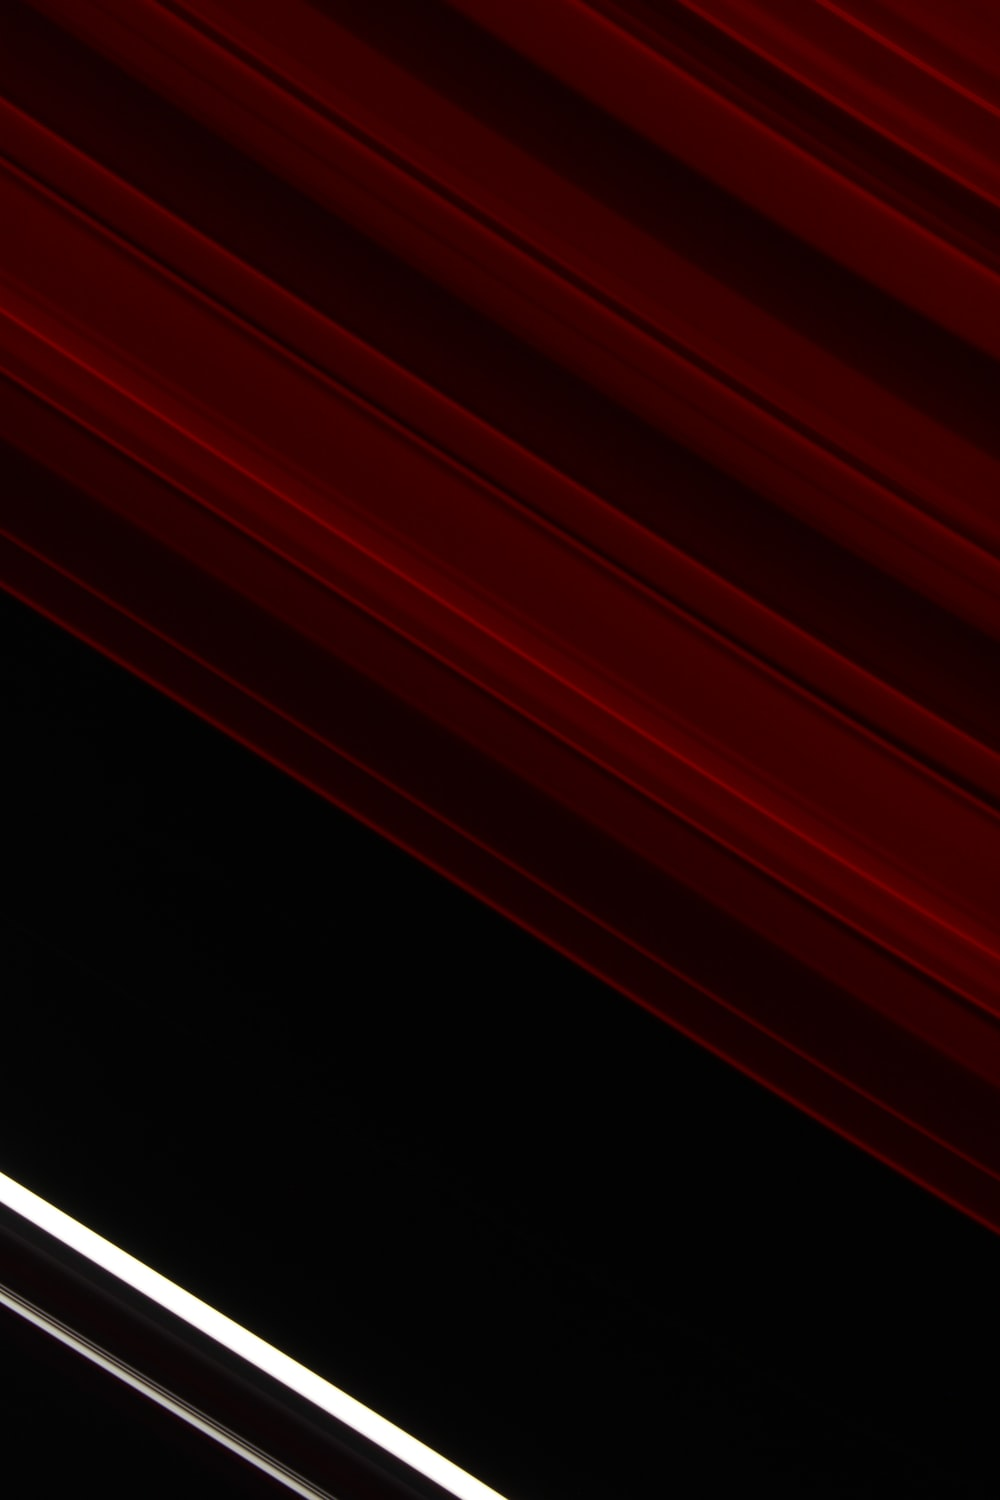 red stripes on a black background